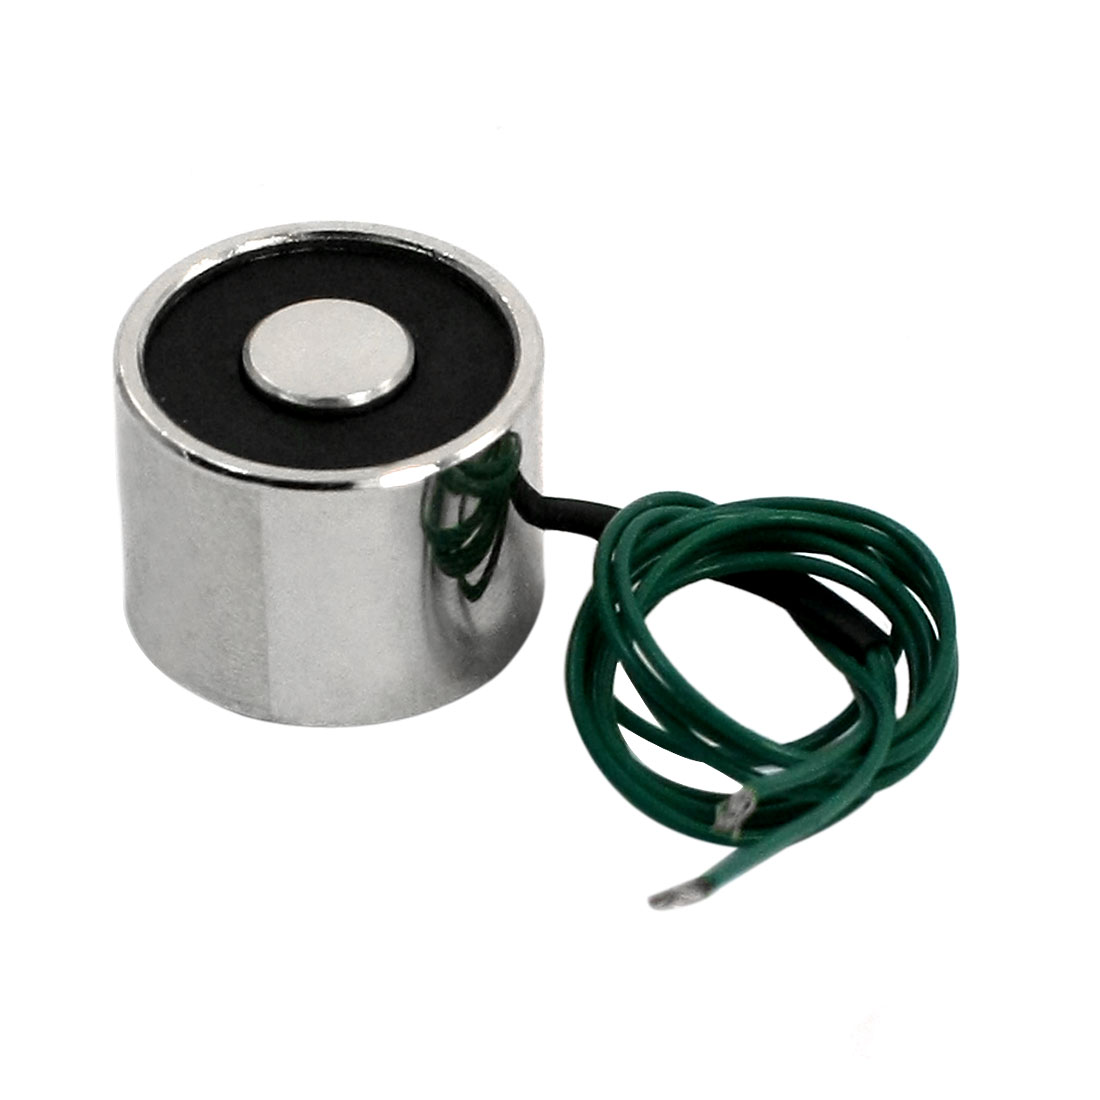 12V 0.24A 2.5Kg Electric Lifting Magnet Electromagnet Solenoid 20x15mm